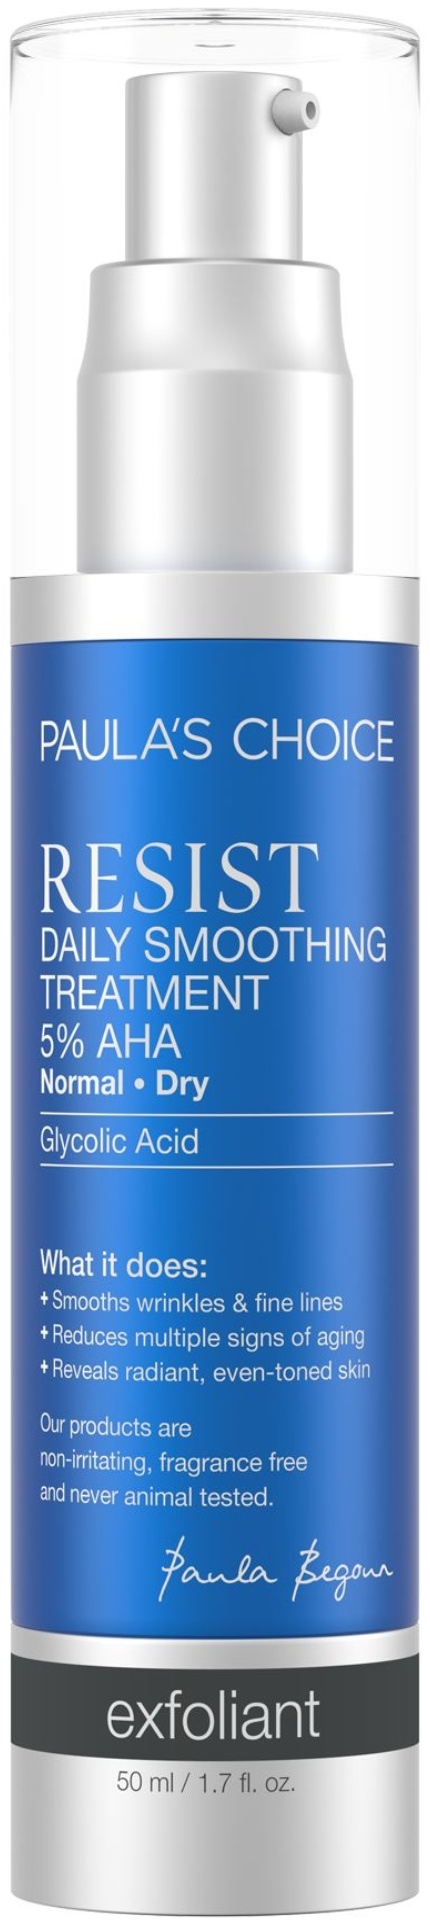 Paula's Choice Resist Daily Smoothing Treatment 5% Aha